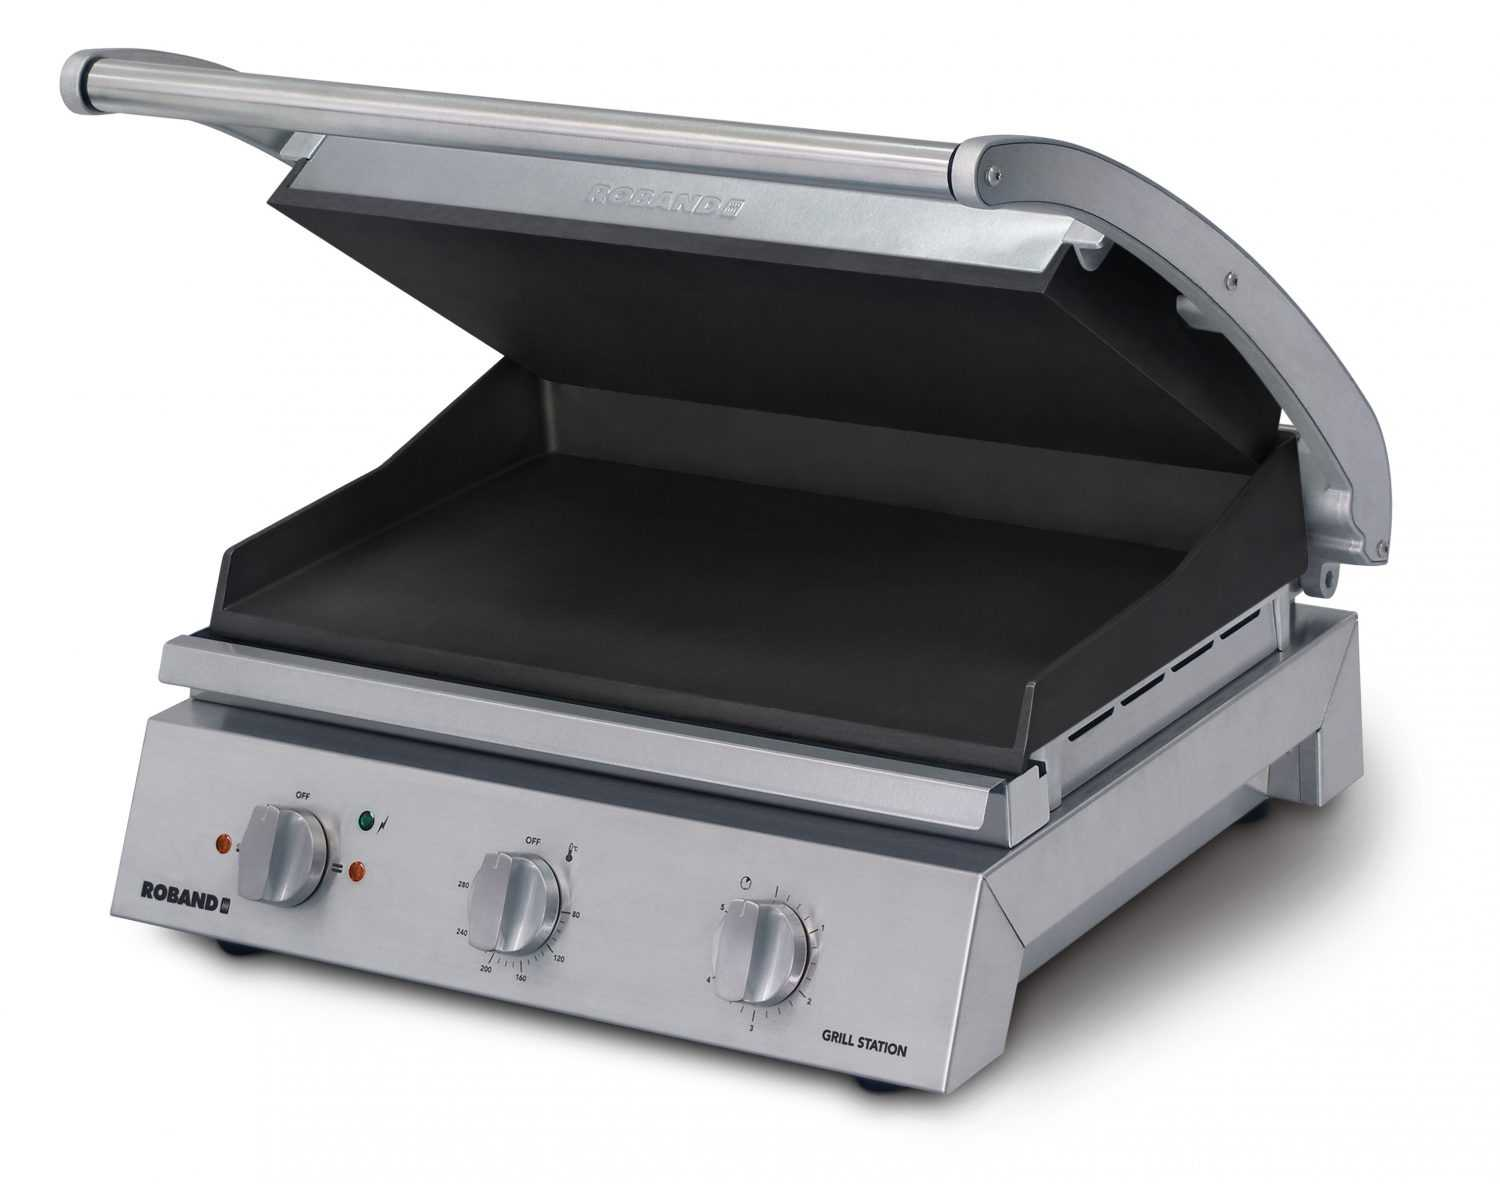 Roband GSA810ST Grill Station 8 slice